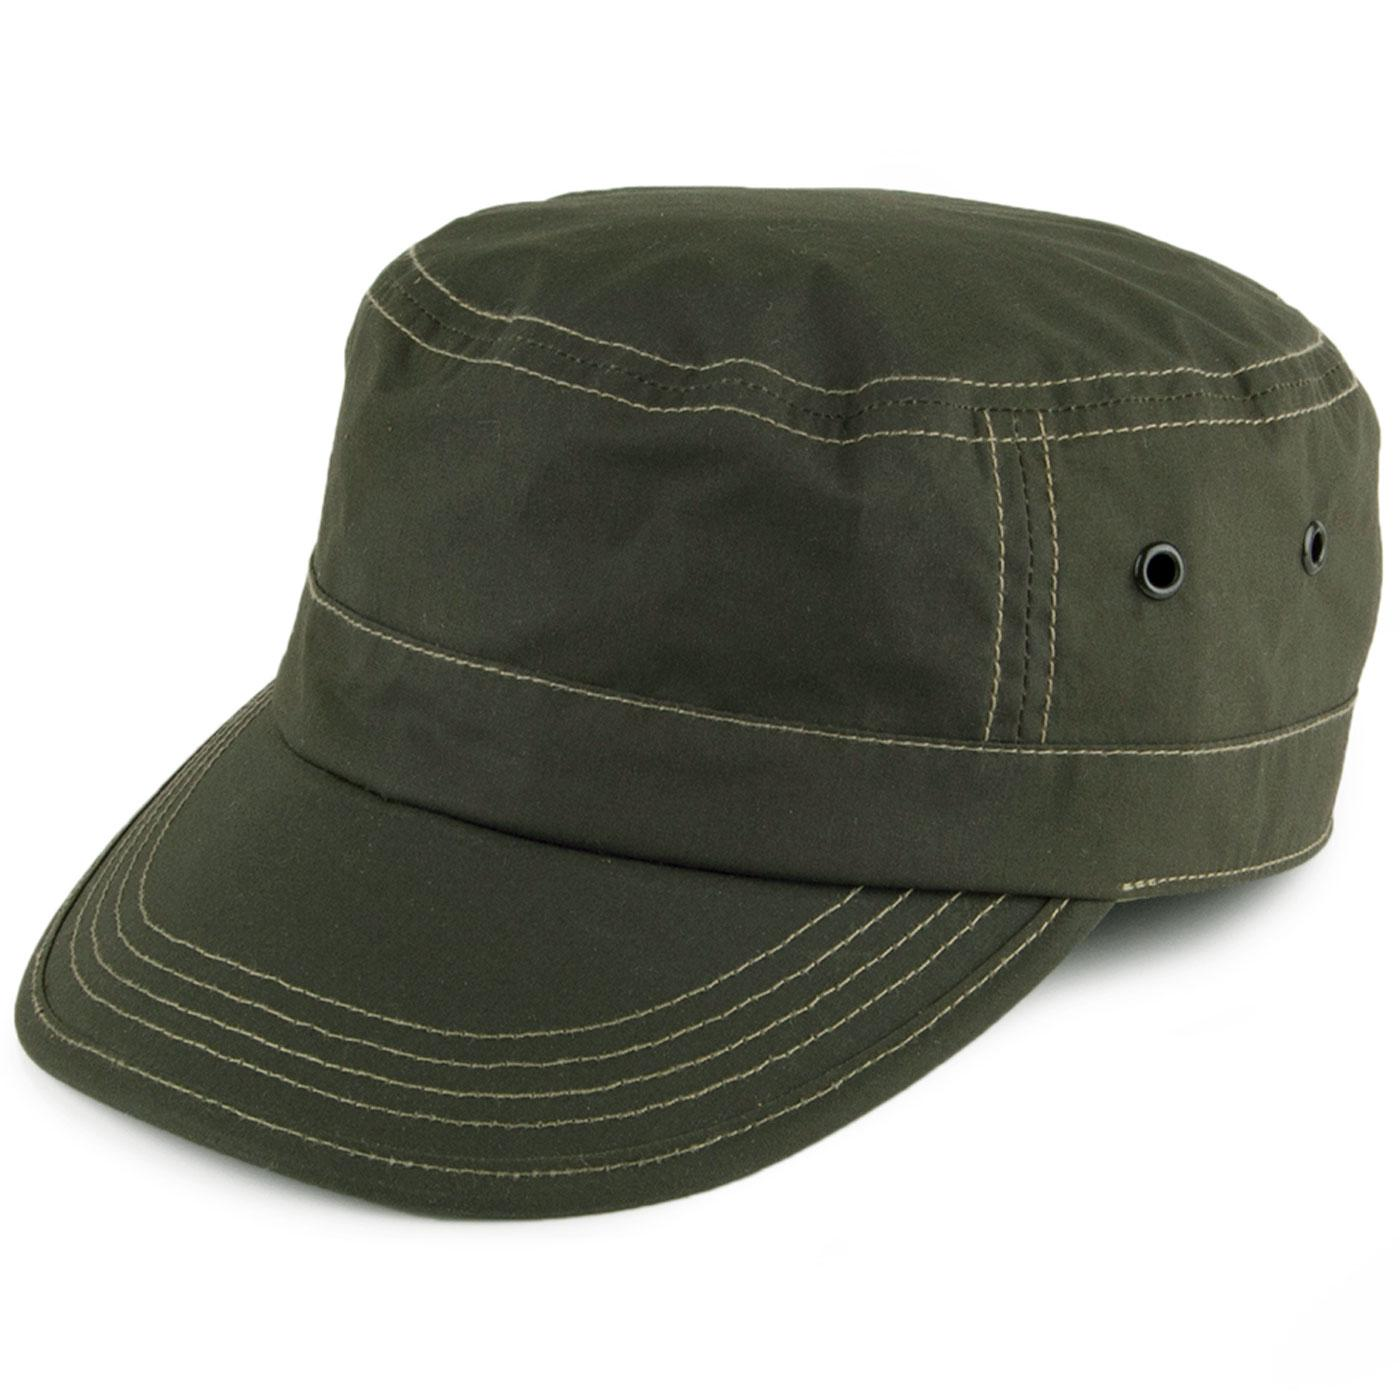 FAILSWORTH Retro Military Dry Wax Train Driver Cap in Olive 0952d524a7c